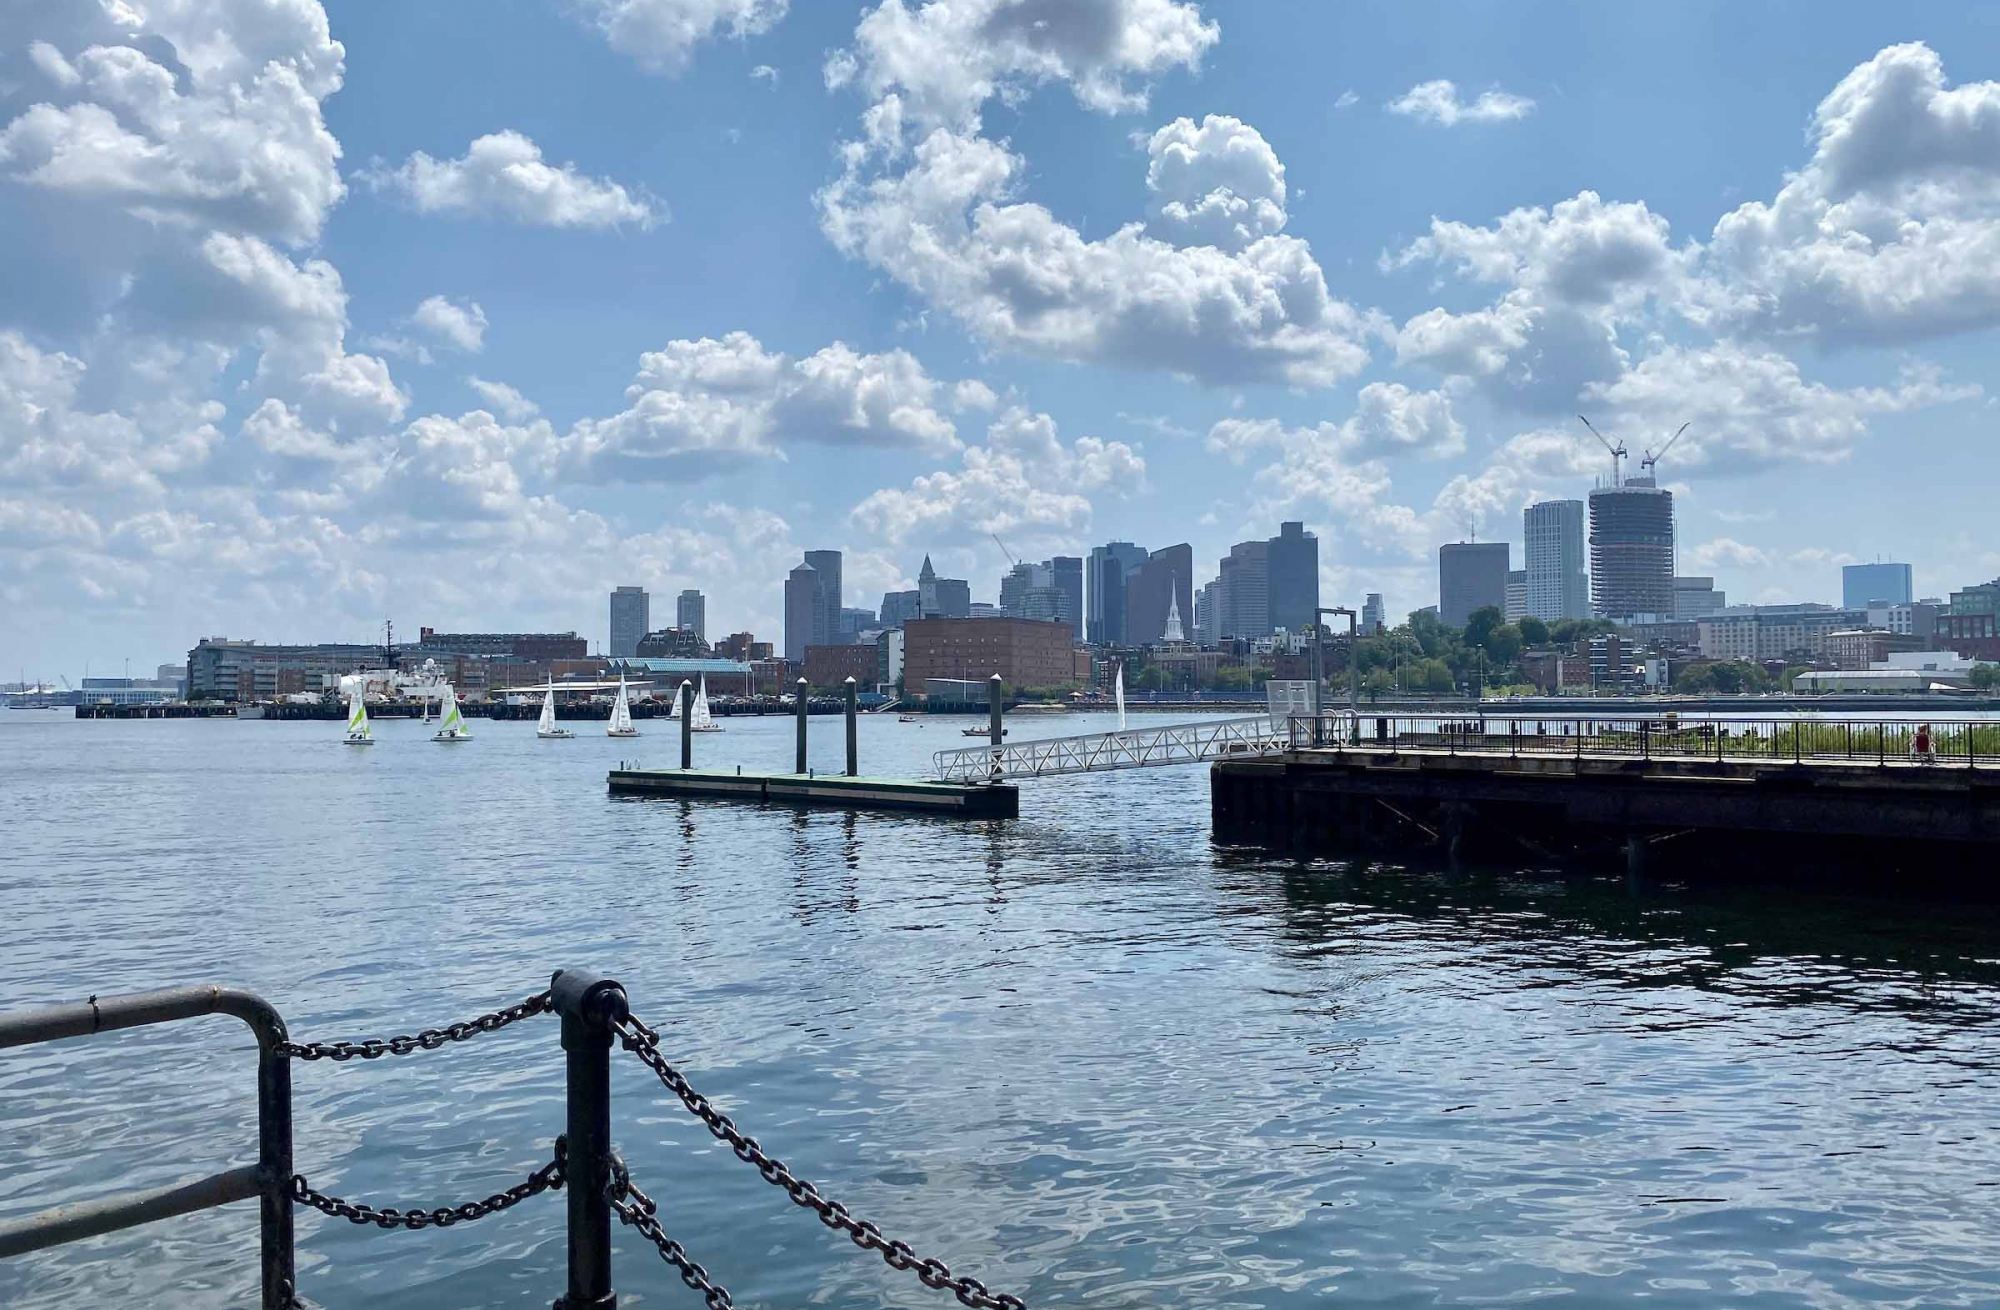 skyline view of boston from pier in navy yard shows sailboats and blue sky